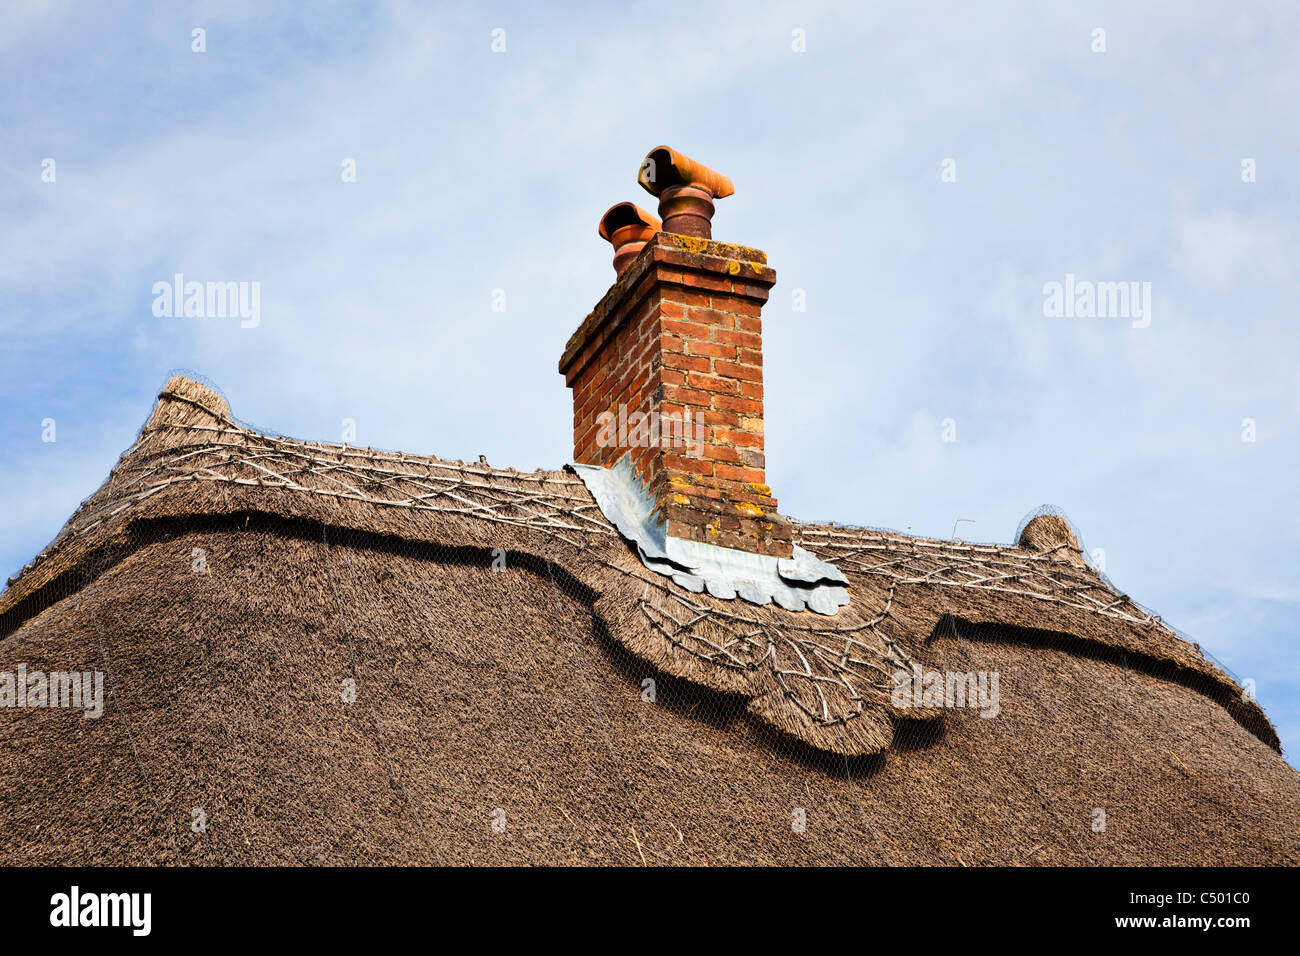 Thatched roof detail and chimney on a small old house England UK - Stock Image